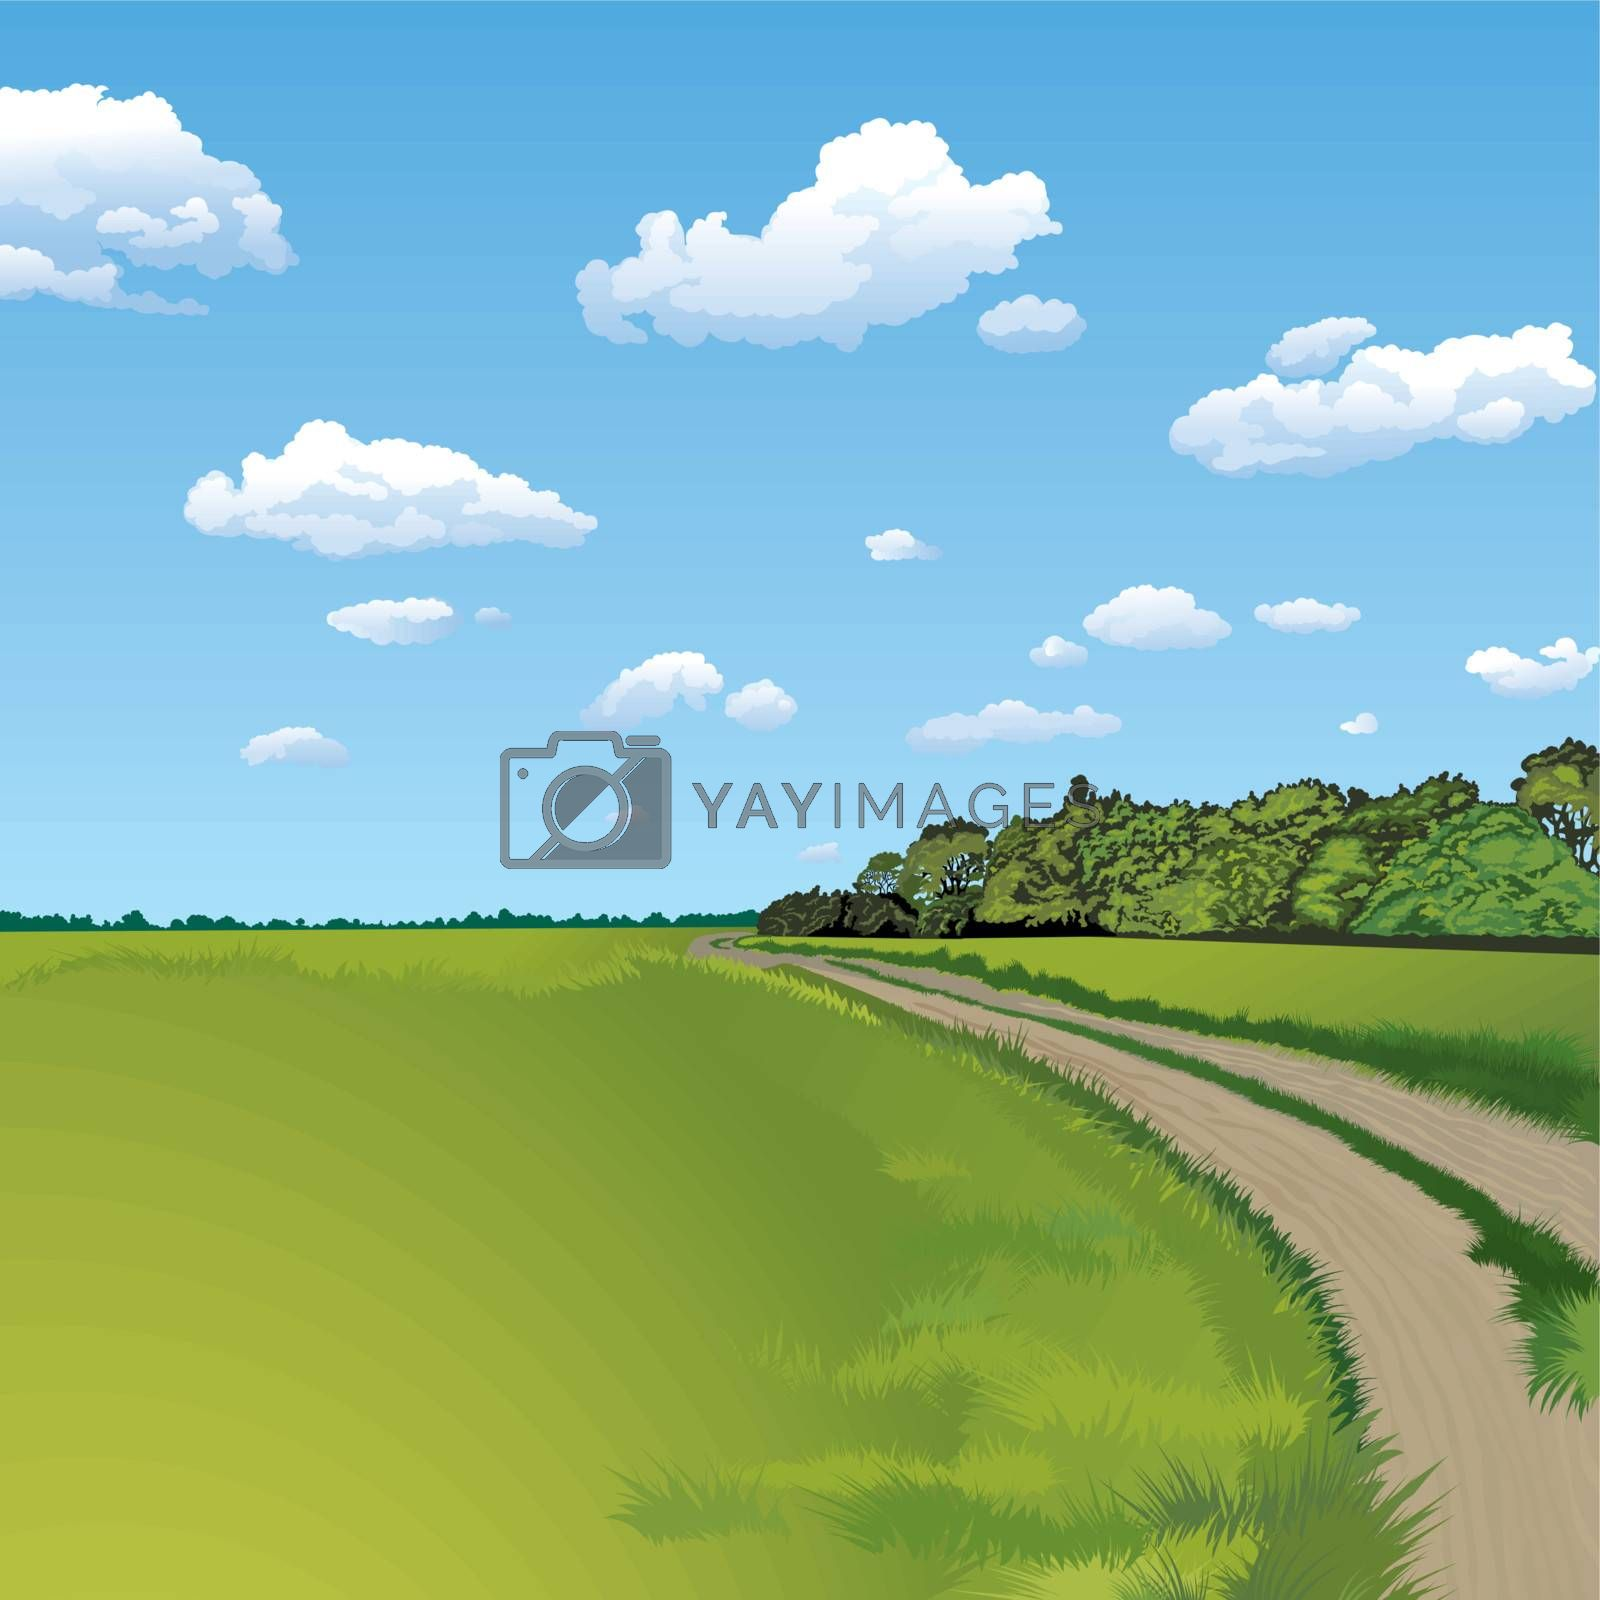 Countryside Road, Rural Scene, editable vector illustration